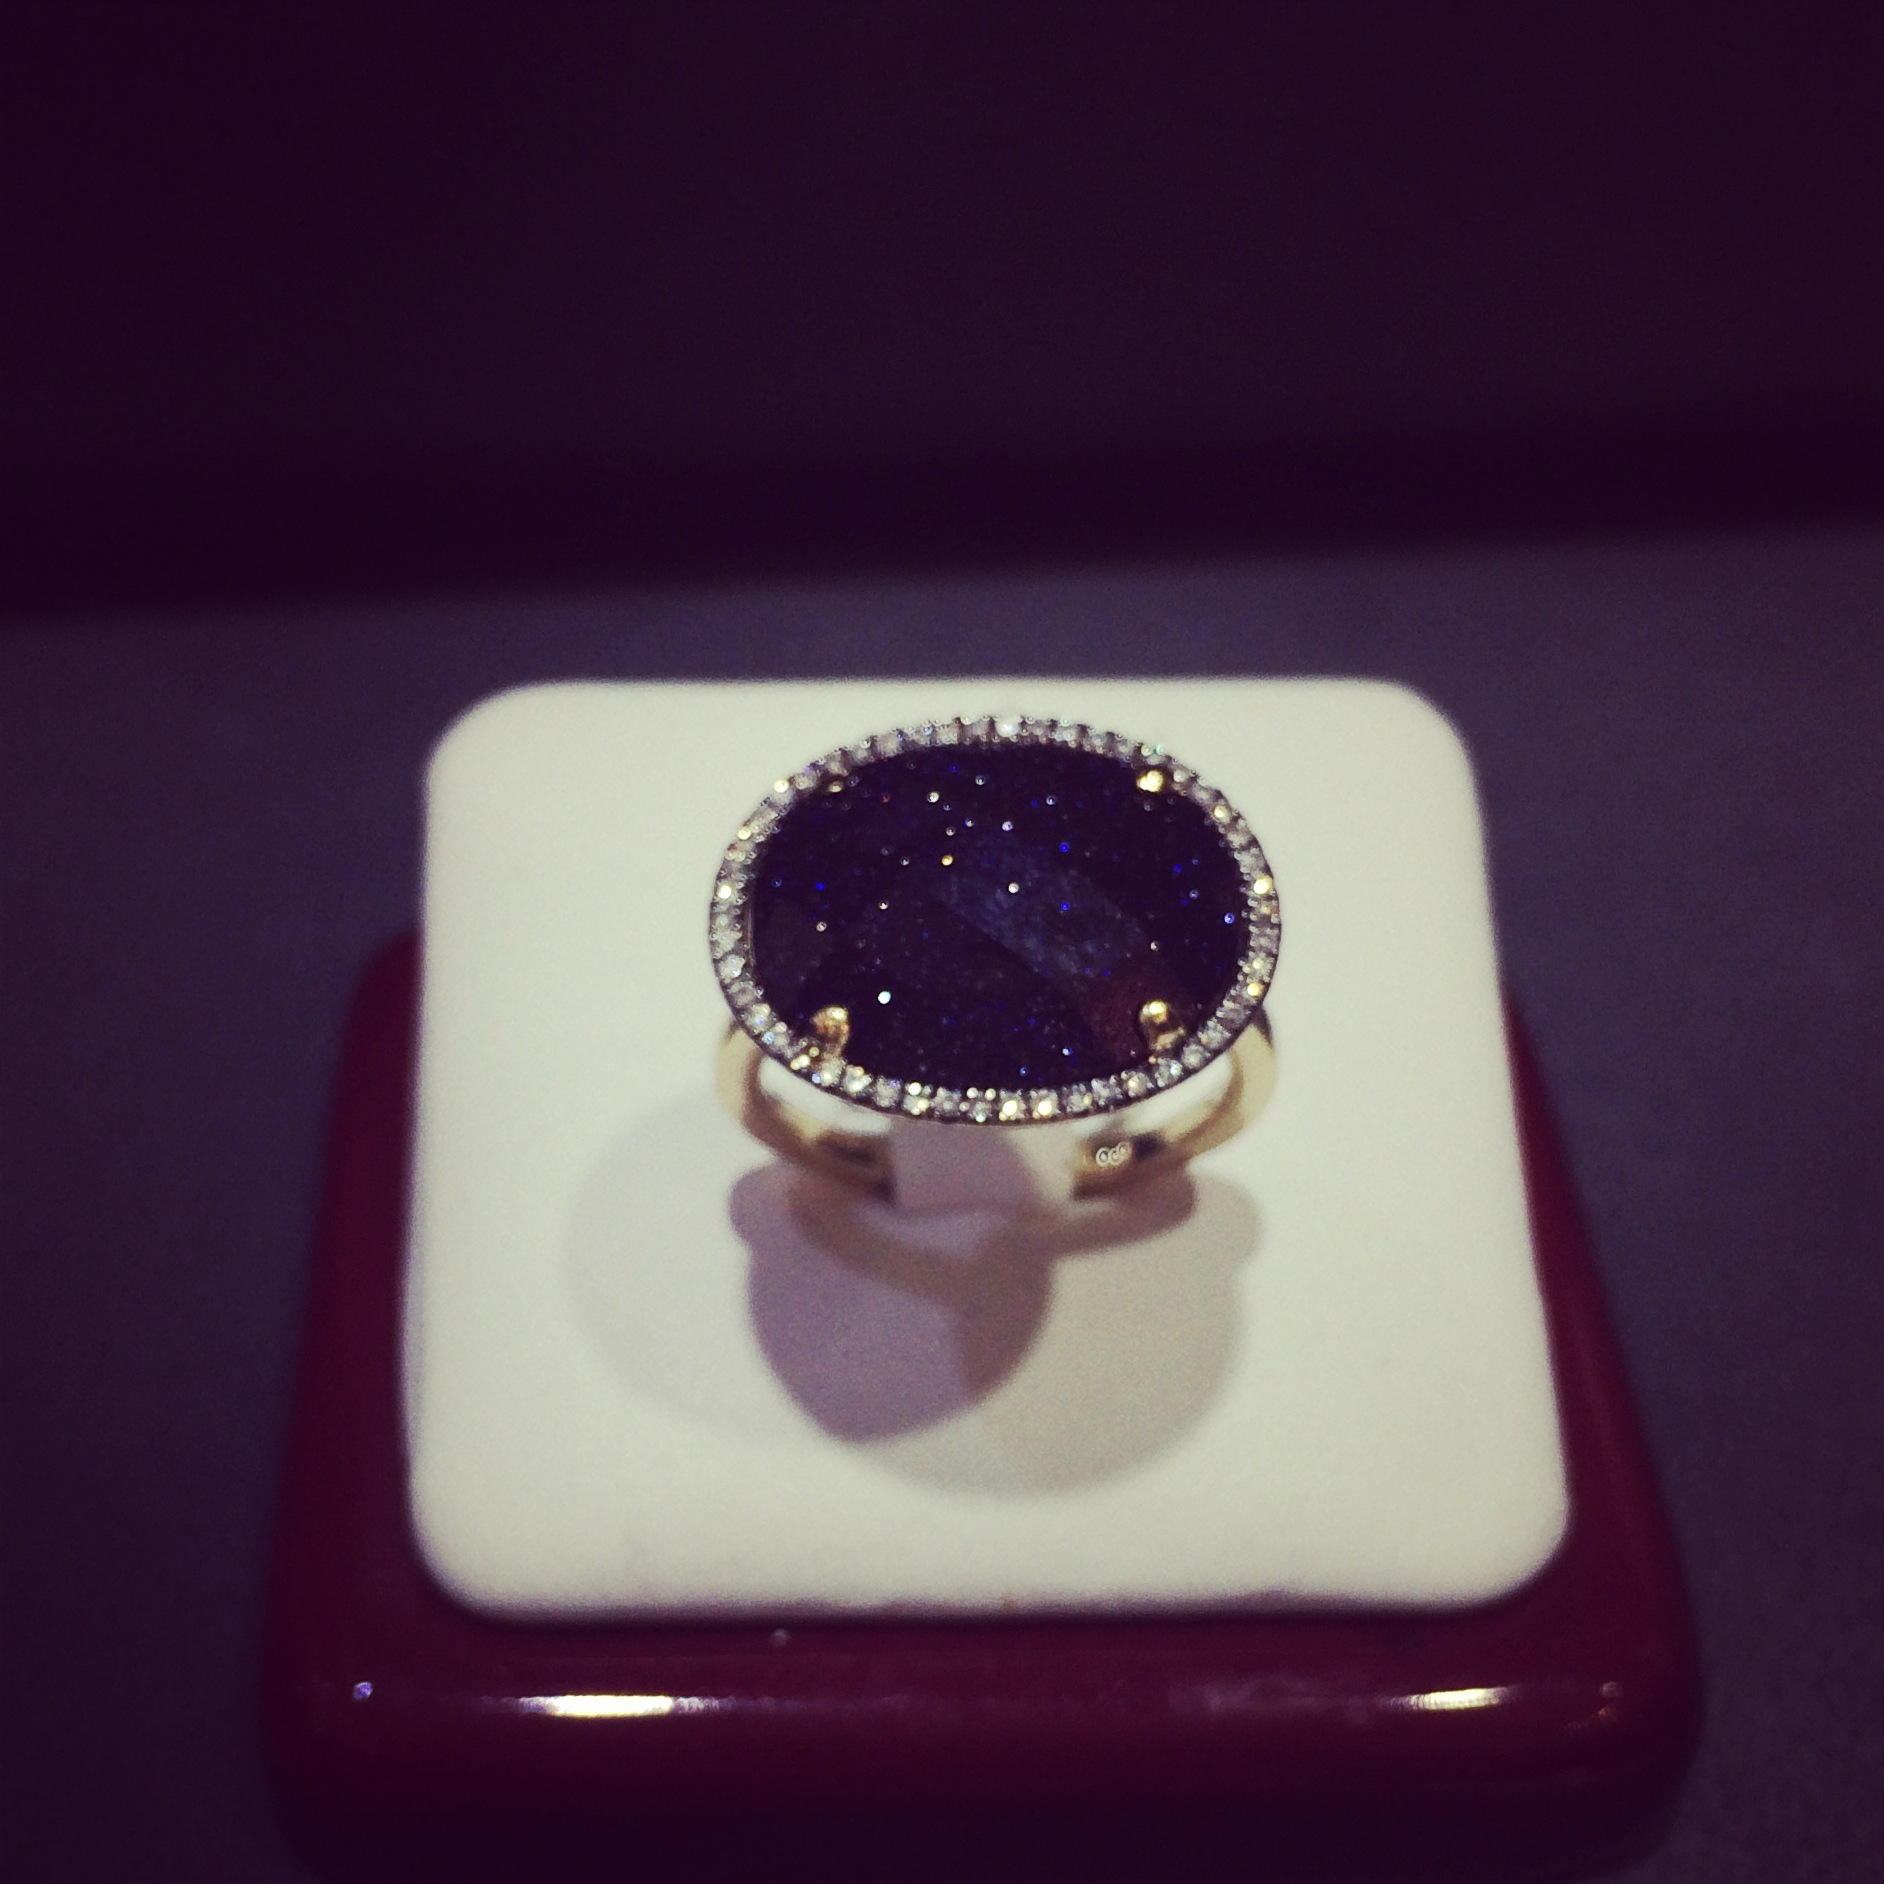 Lapis Lazuli - a non traditional engagement ring option for the bride seeking a head turning piece that stands out from the crowd. Photo courtesy of me and my iPhone.